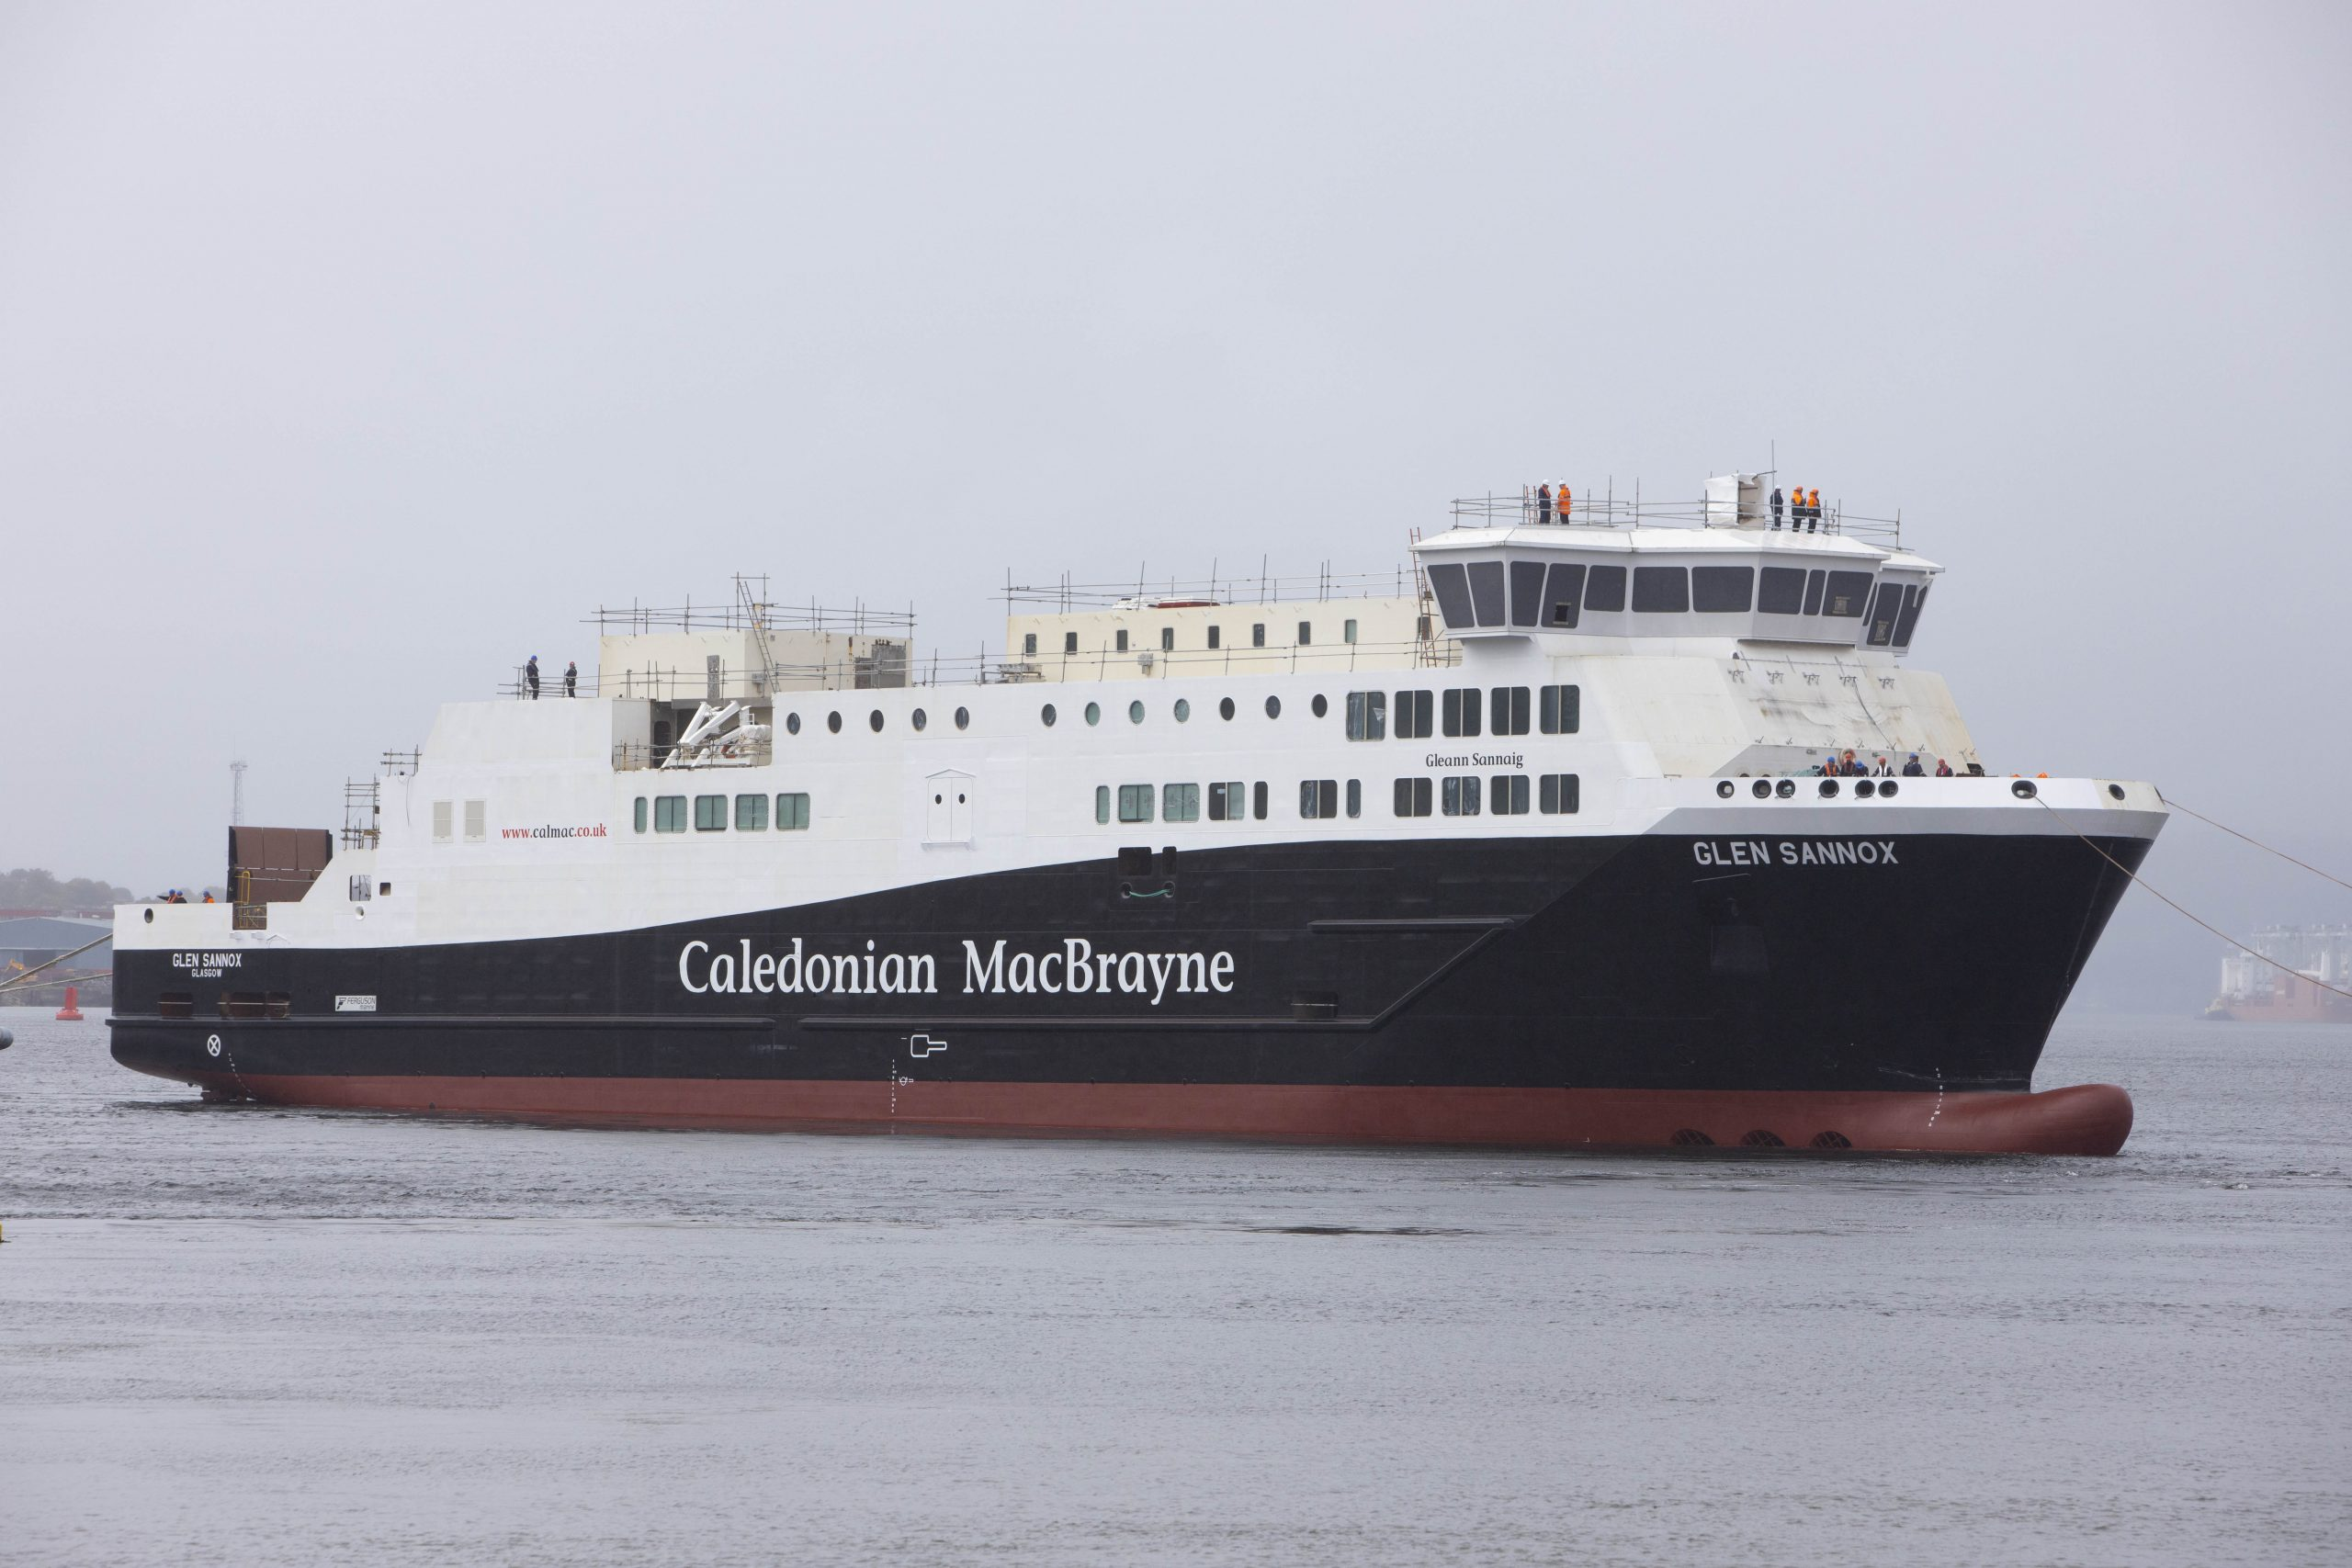 MV Glen Sannox